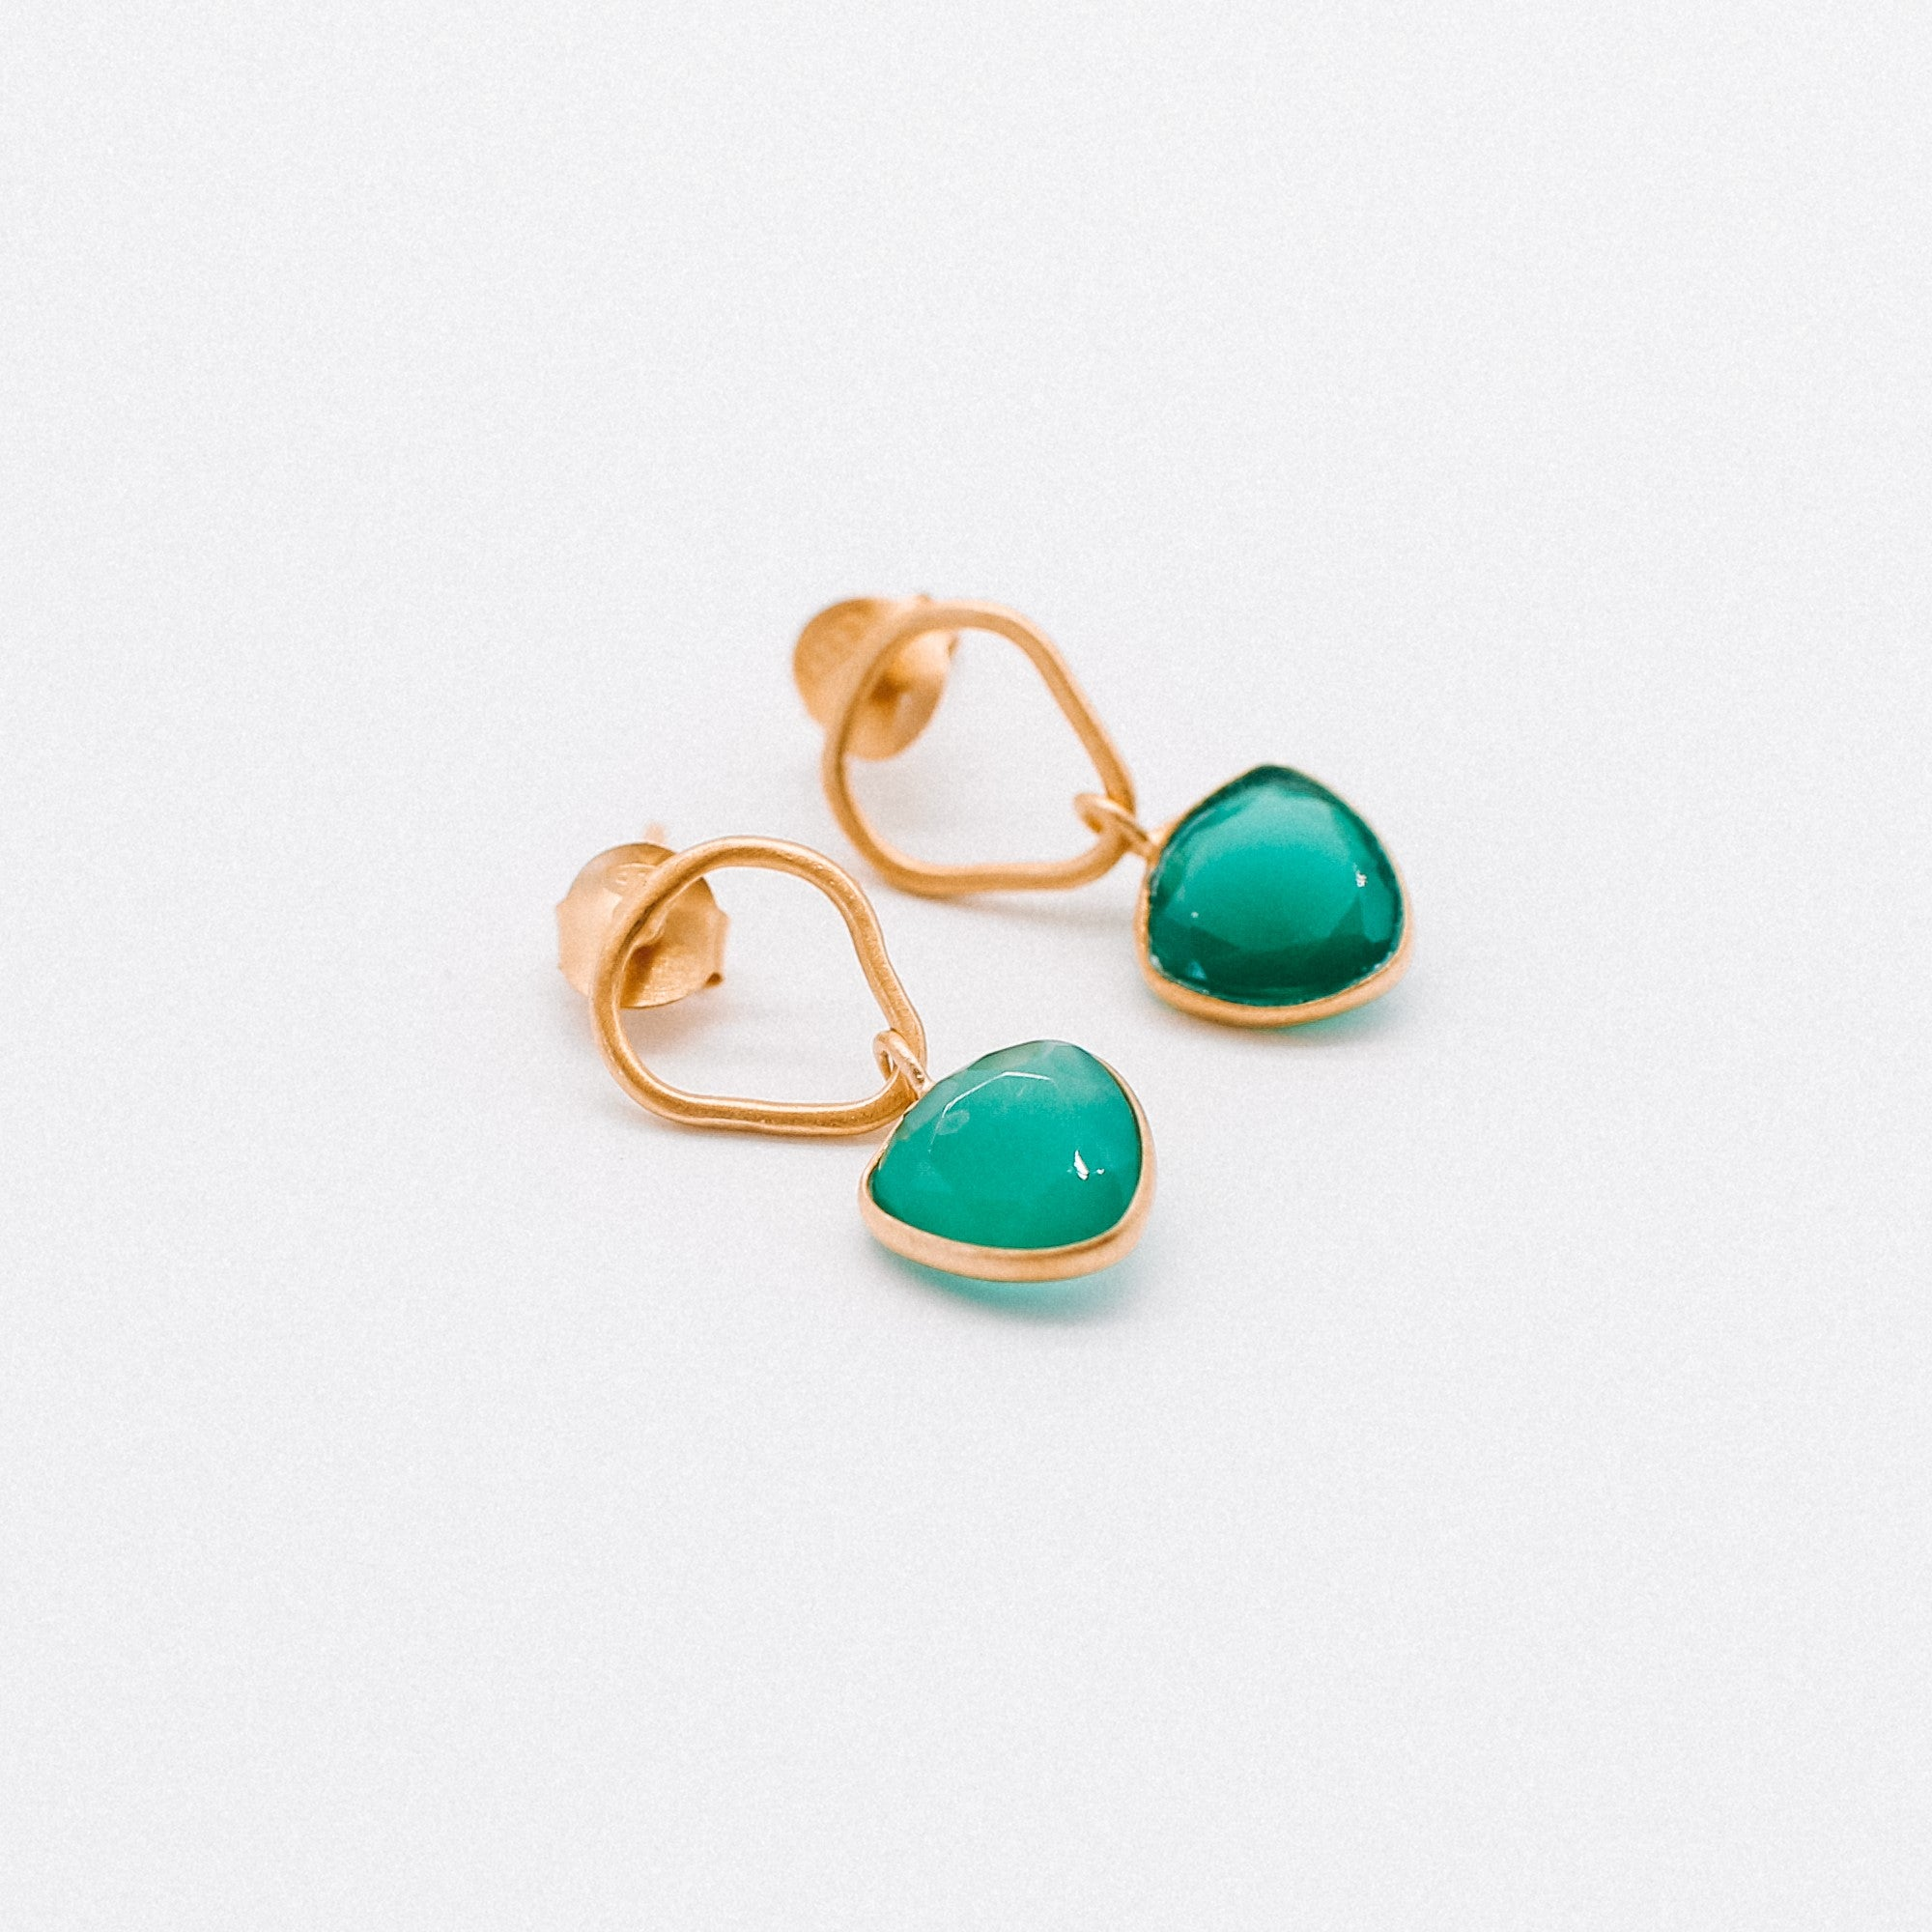 Jolie Earrings 	Delicate Green Onyx handmade gold plated Katy Valentine - Shop with Sparkle & The Sinner